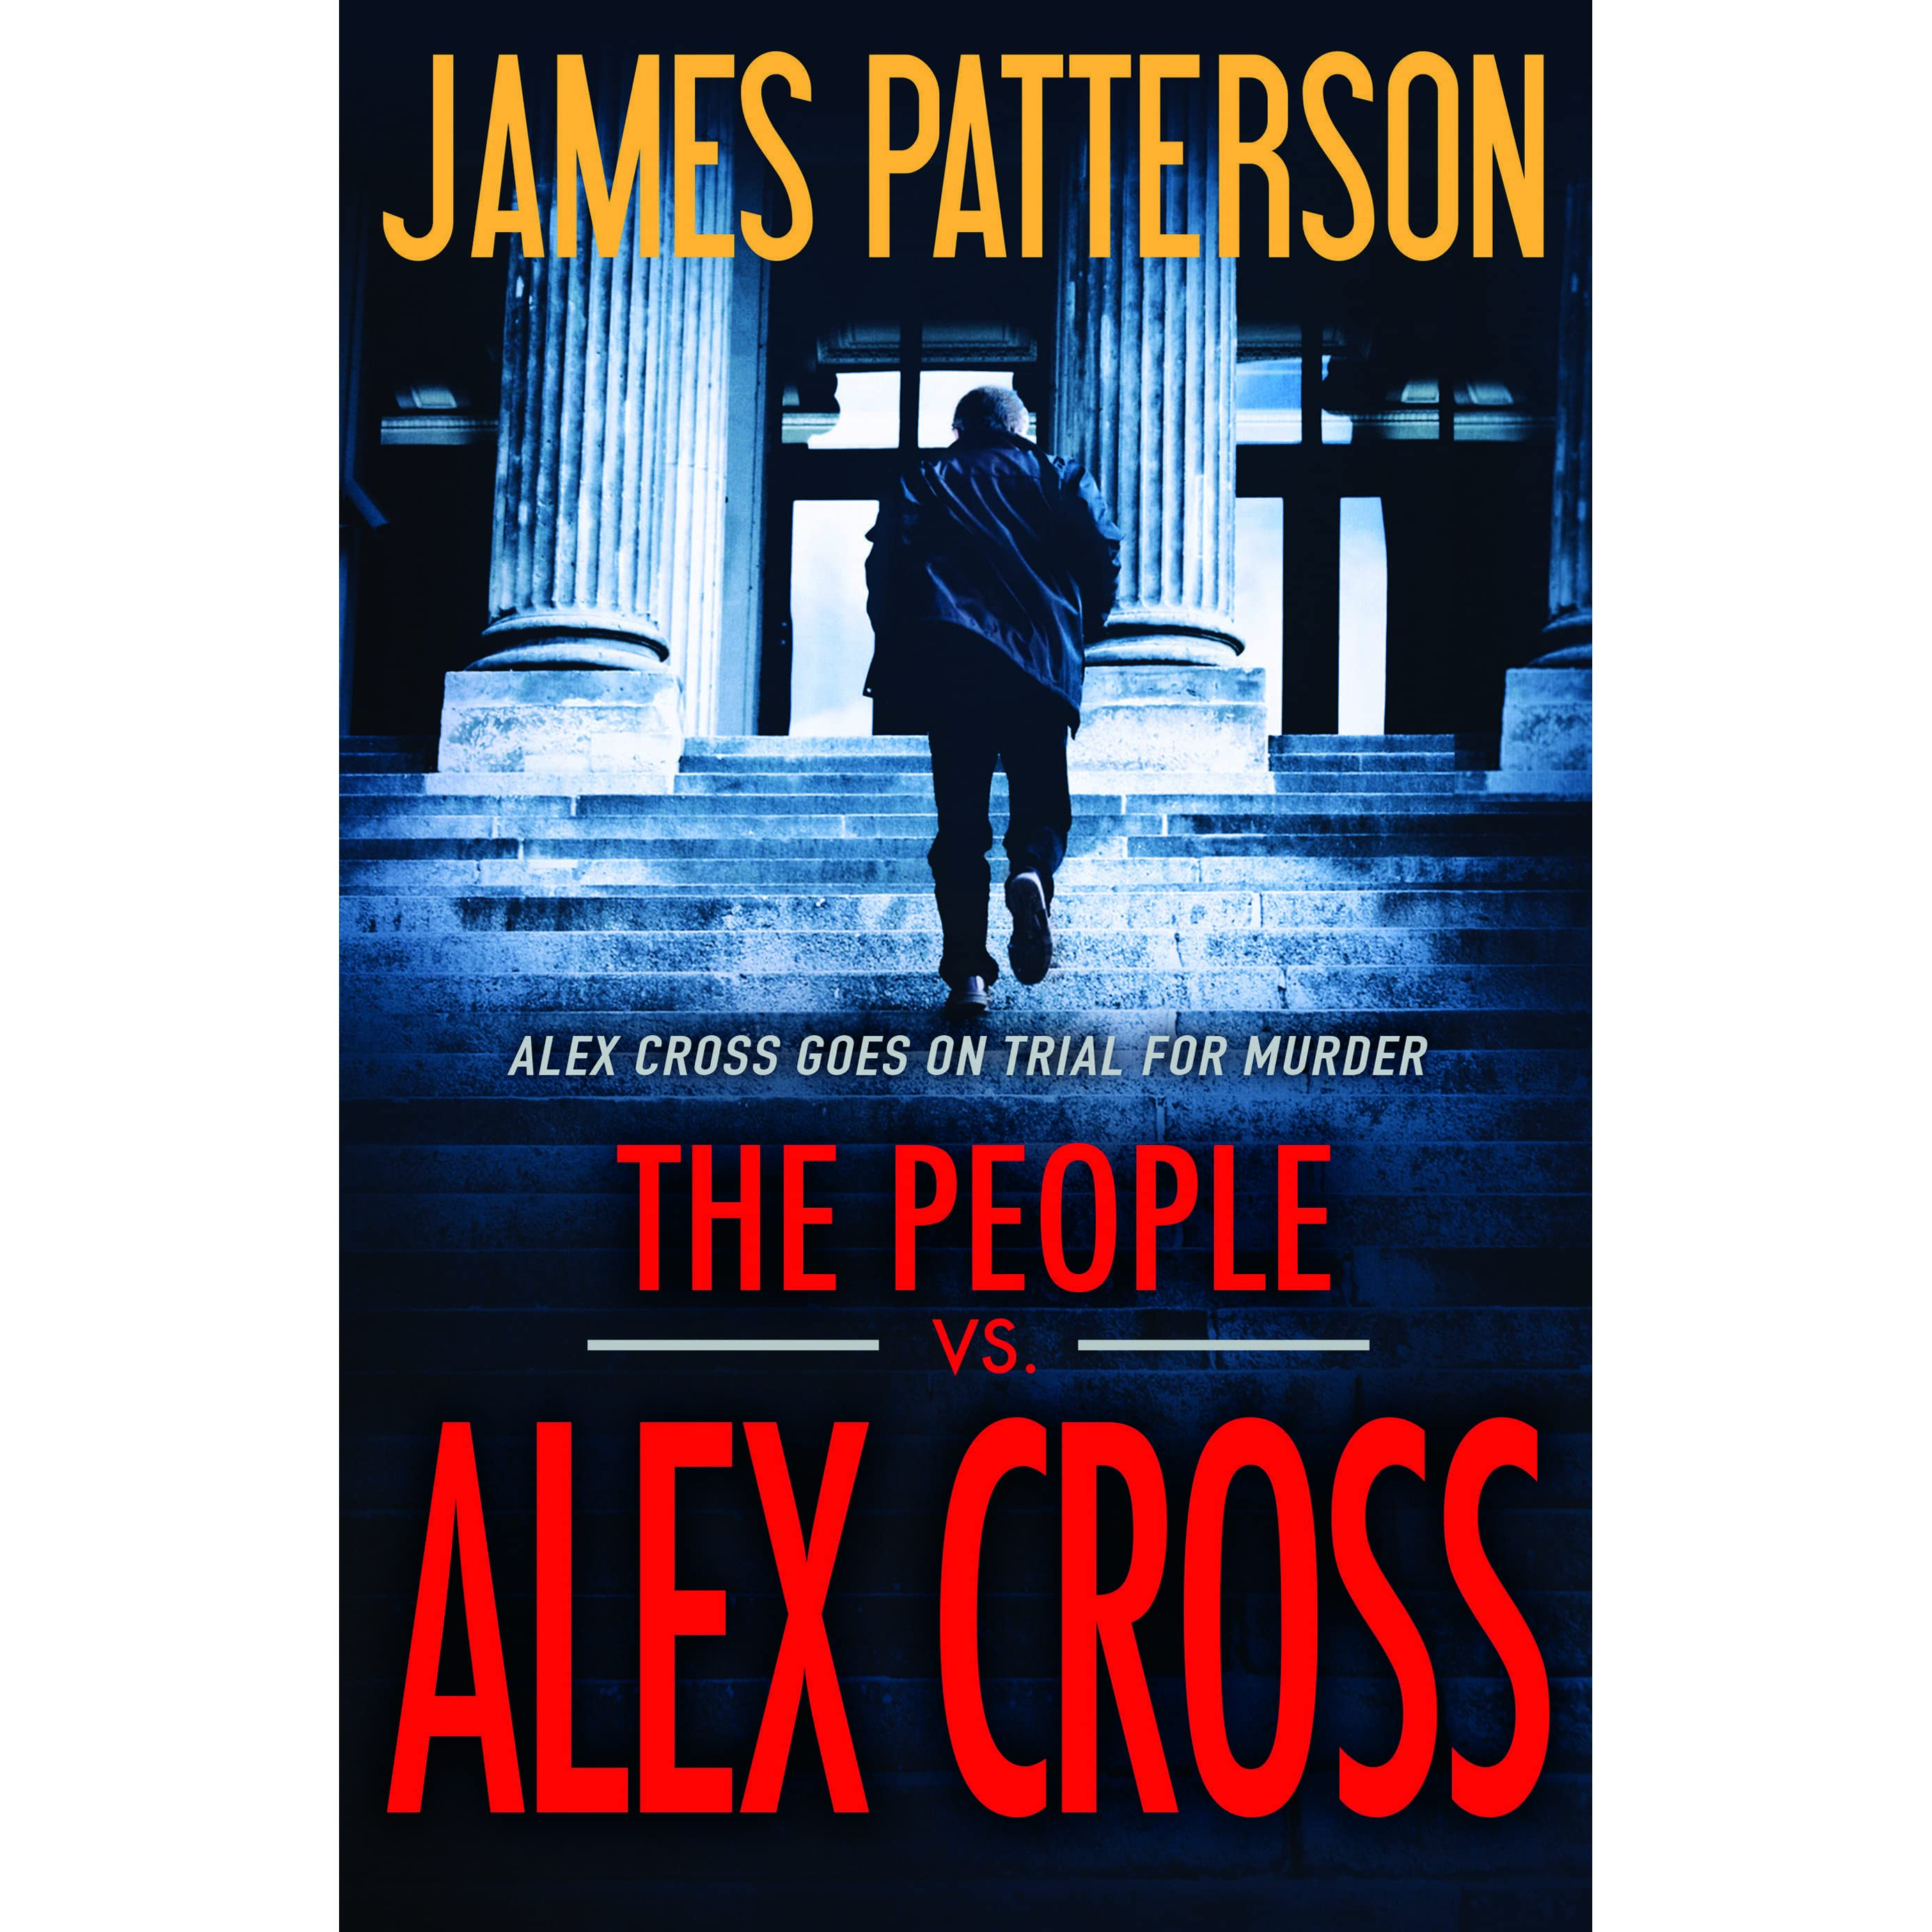 Middle school james patterson goodreads giveaways